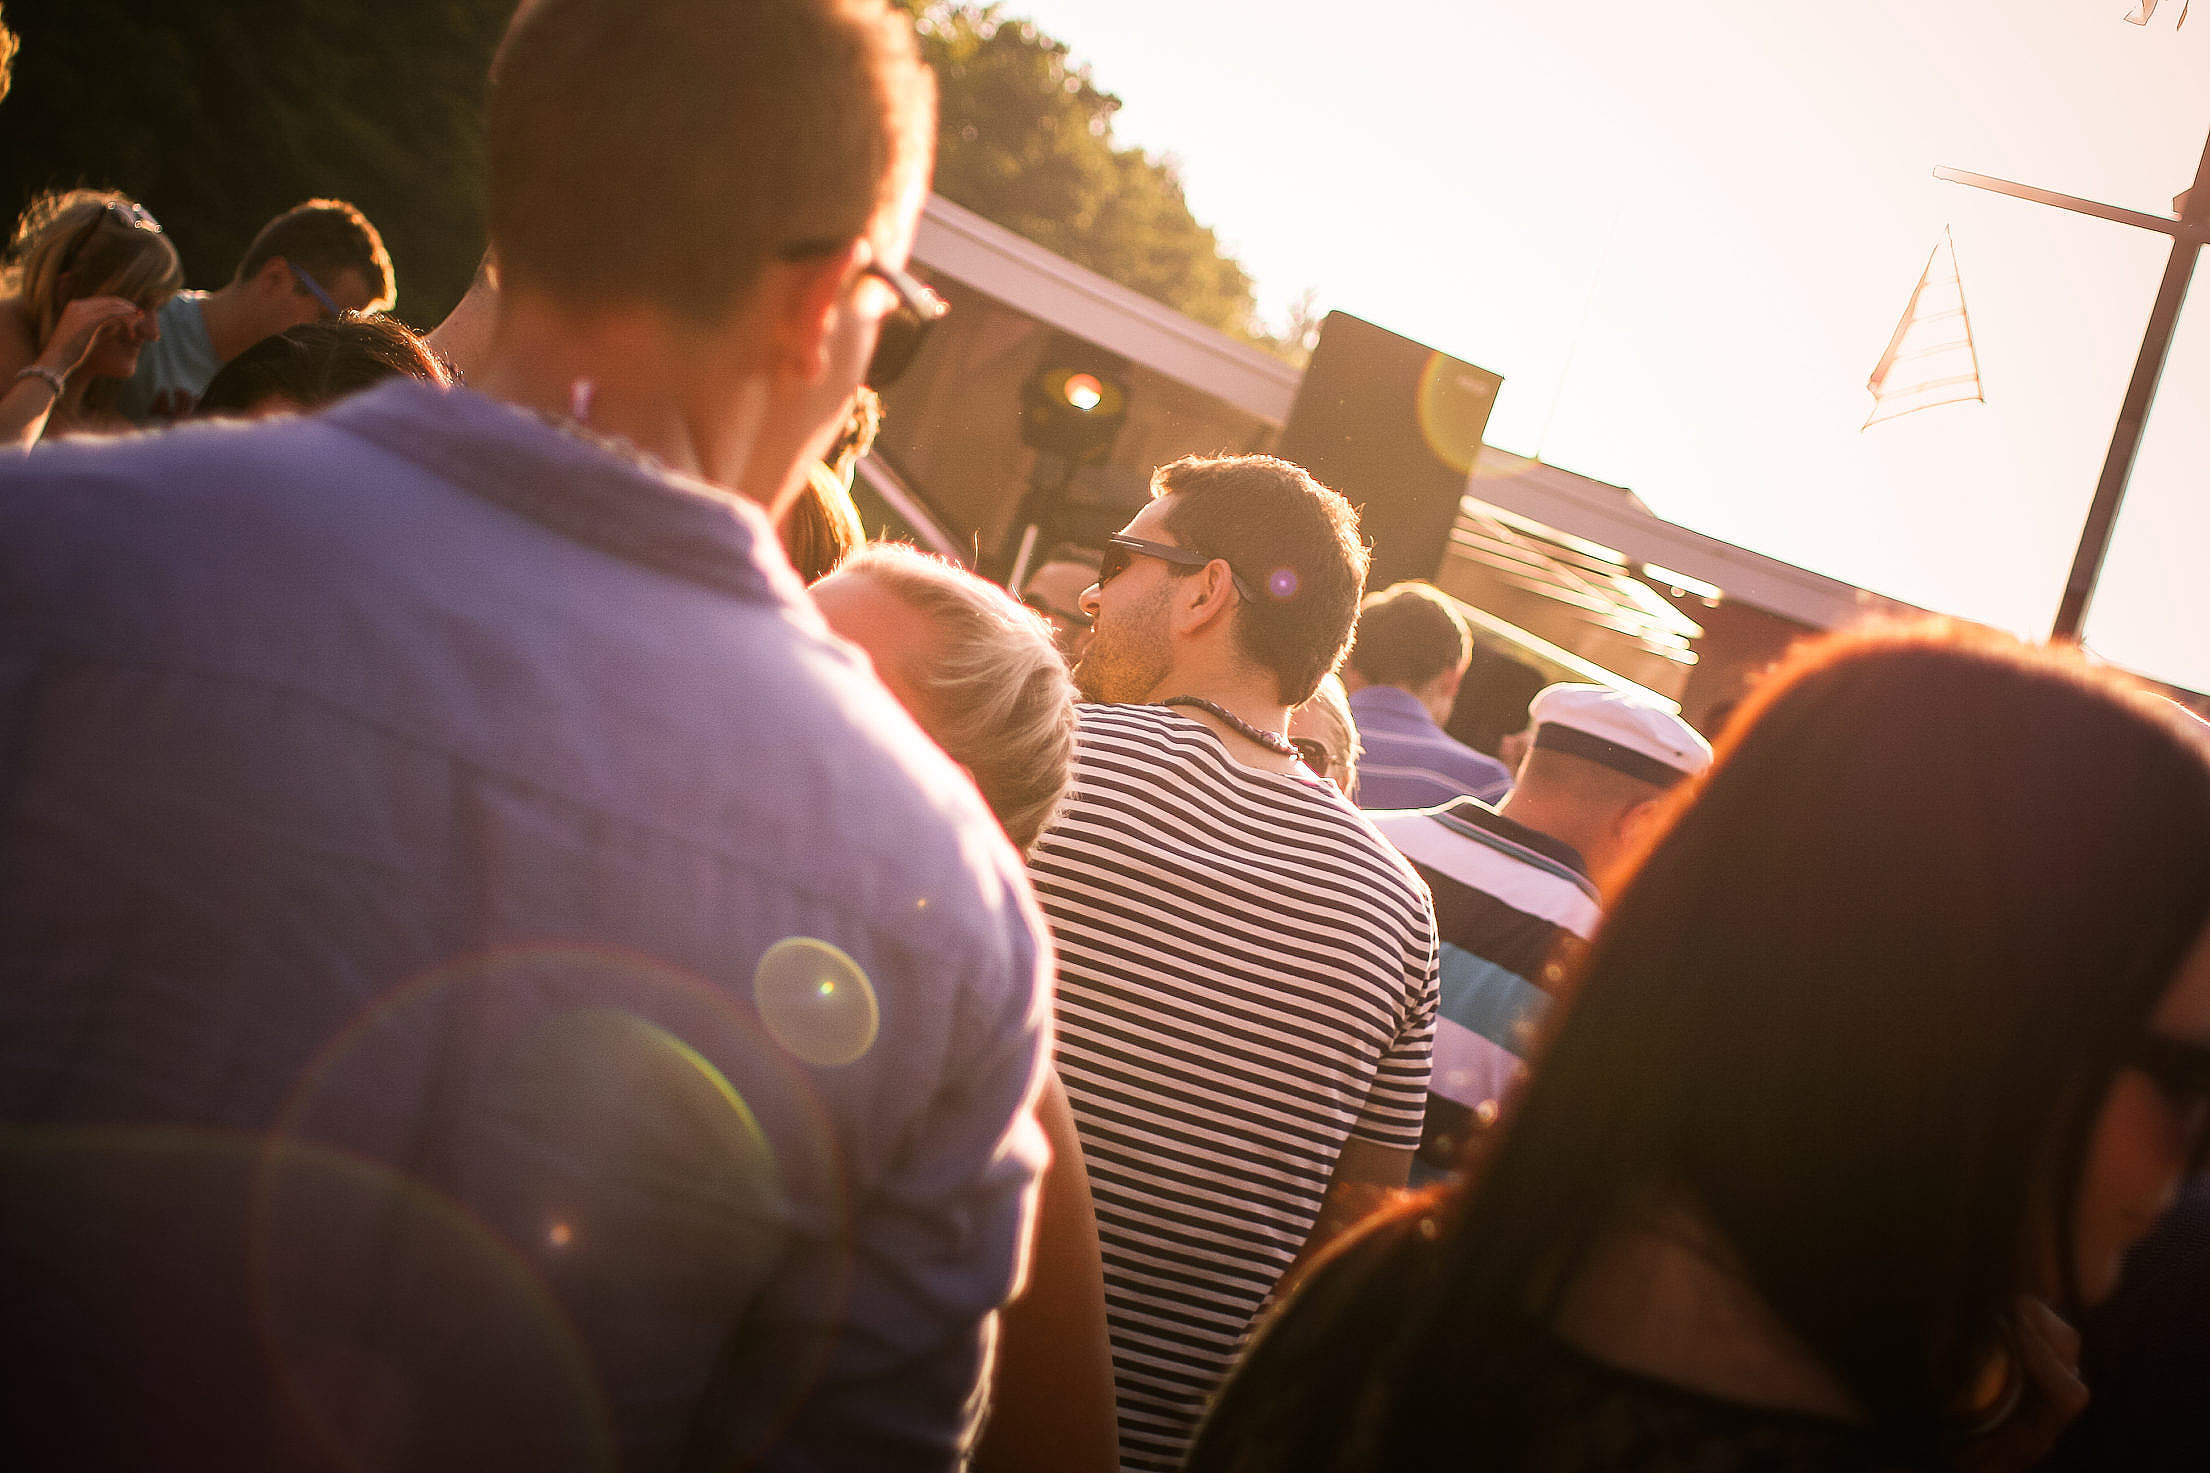 Sunset Open Air Party Free Stock Photo